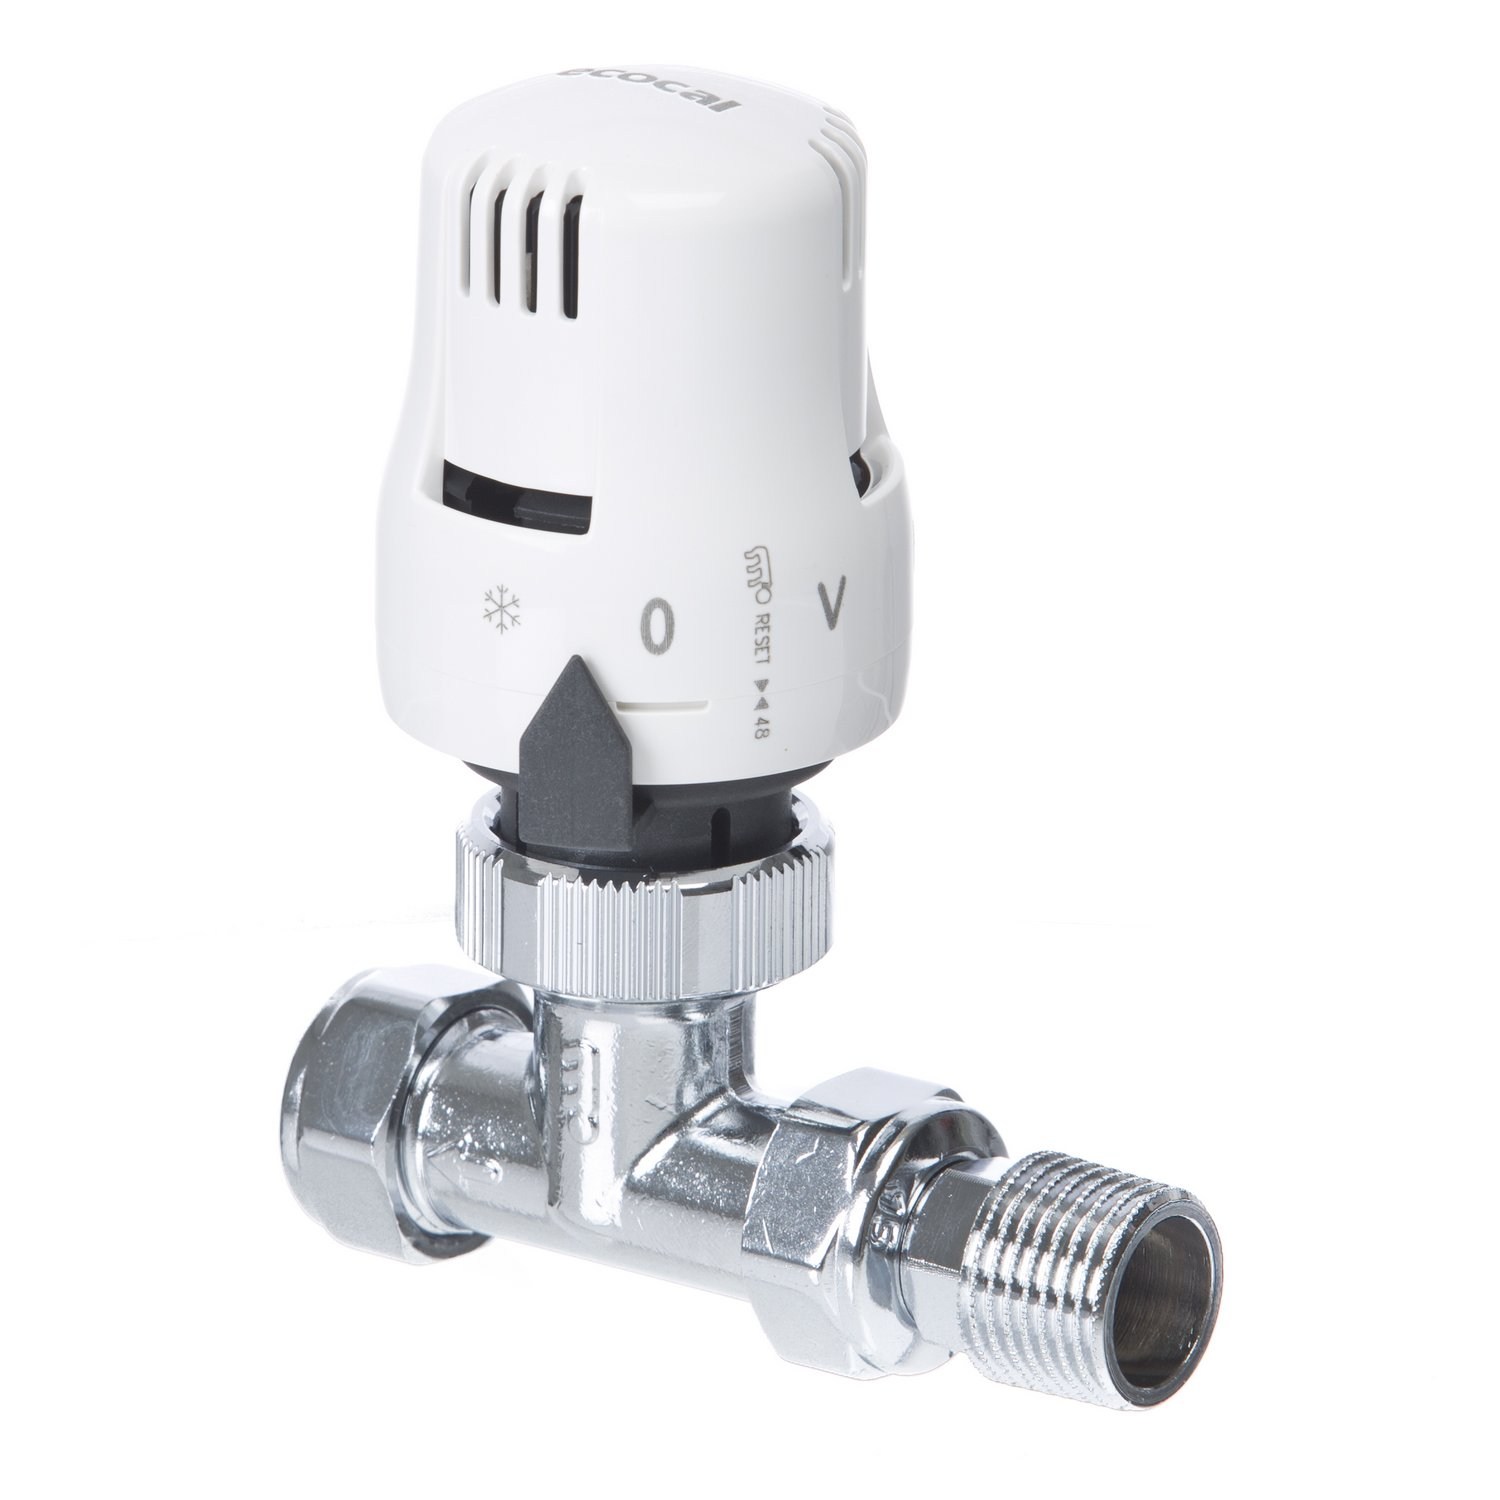 https://www.mepstock.co.uk/admin/images/ECOCAL THERMOSTATIC RADIATOR VALVE 2.jpg